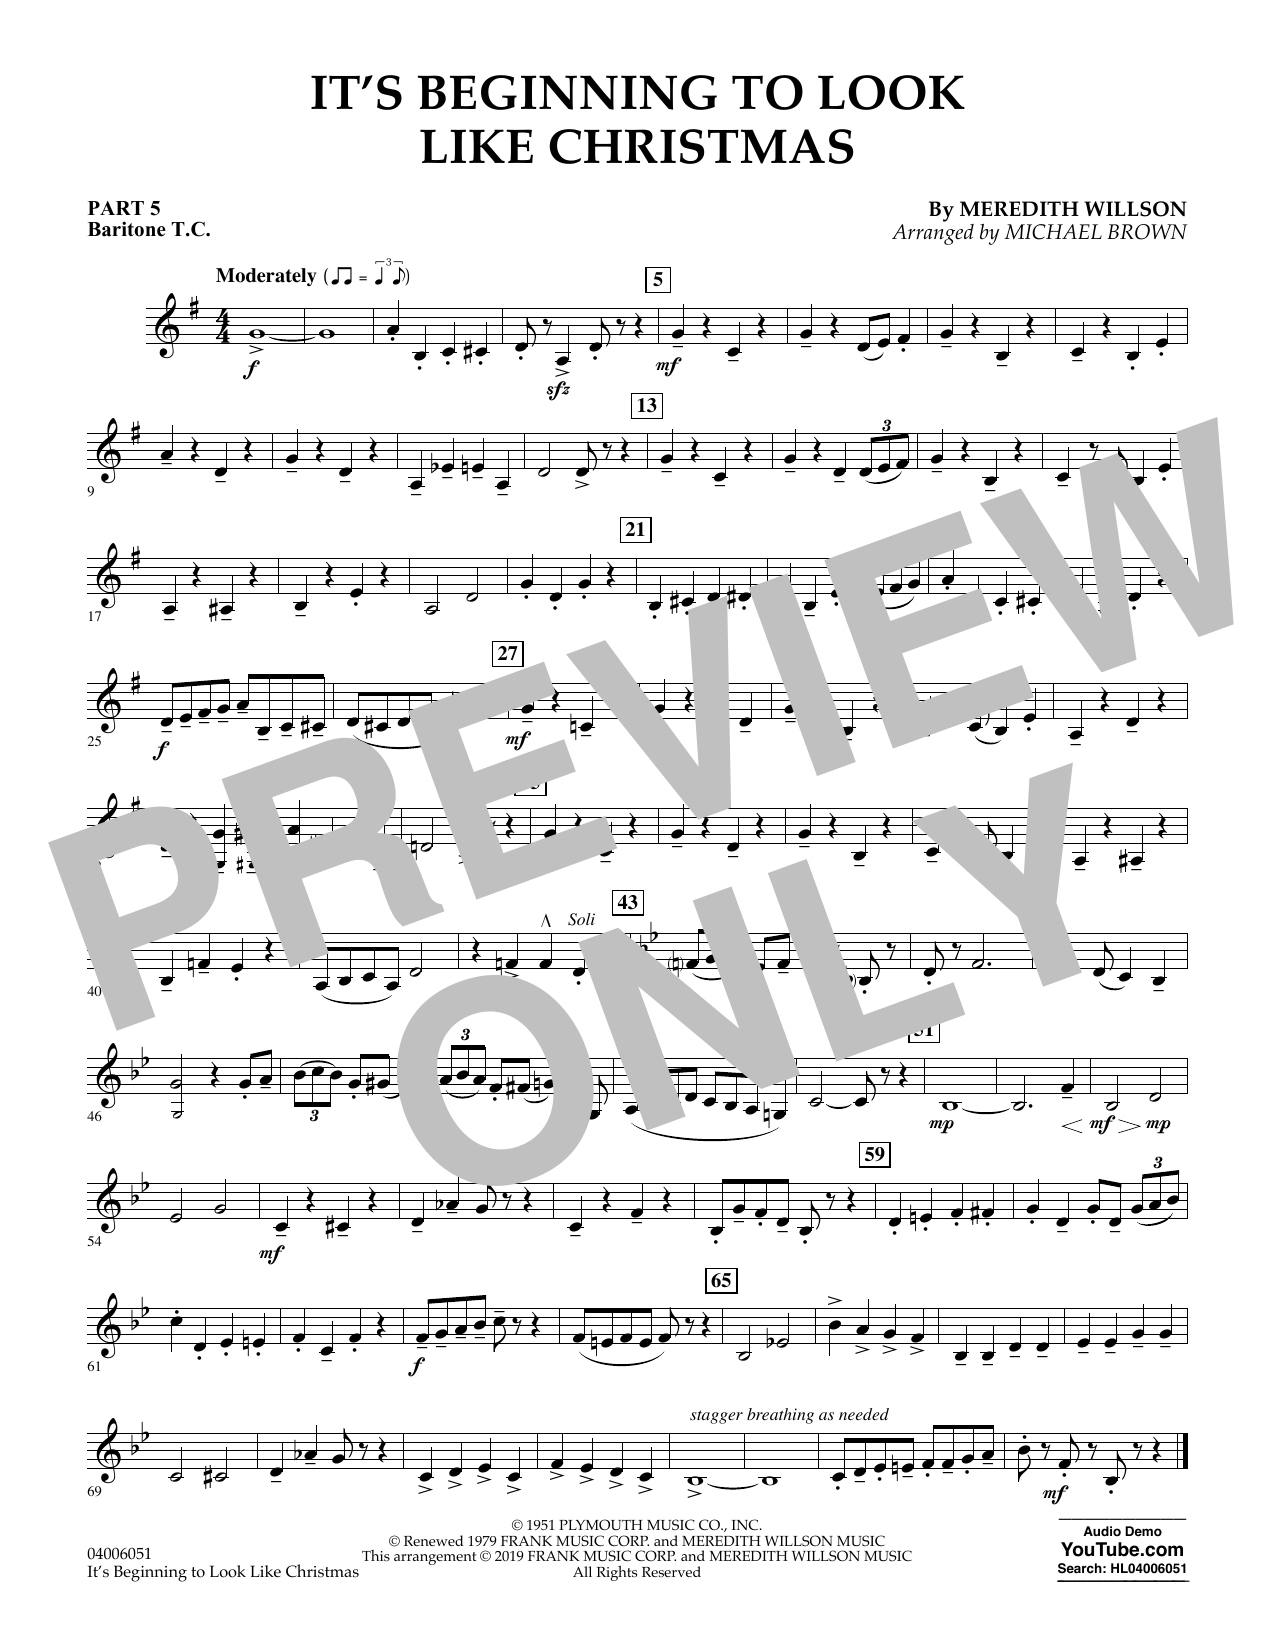 It's Beginning to Look Like Christmas (arr. Michael Brown) - Pt.5 - Baritone T.C. (Flex-Band)